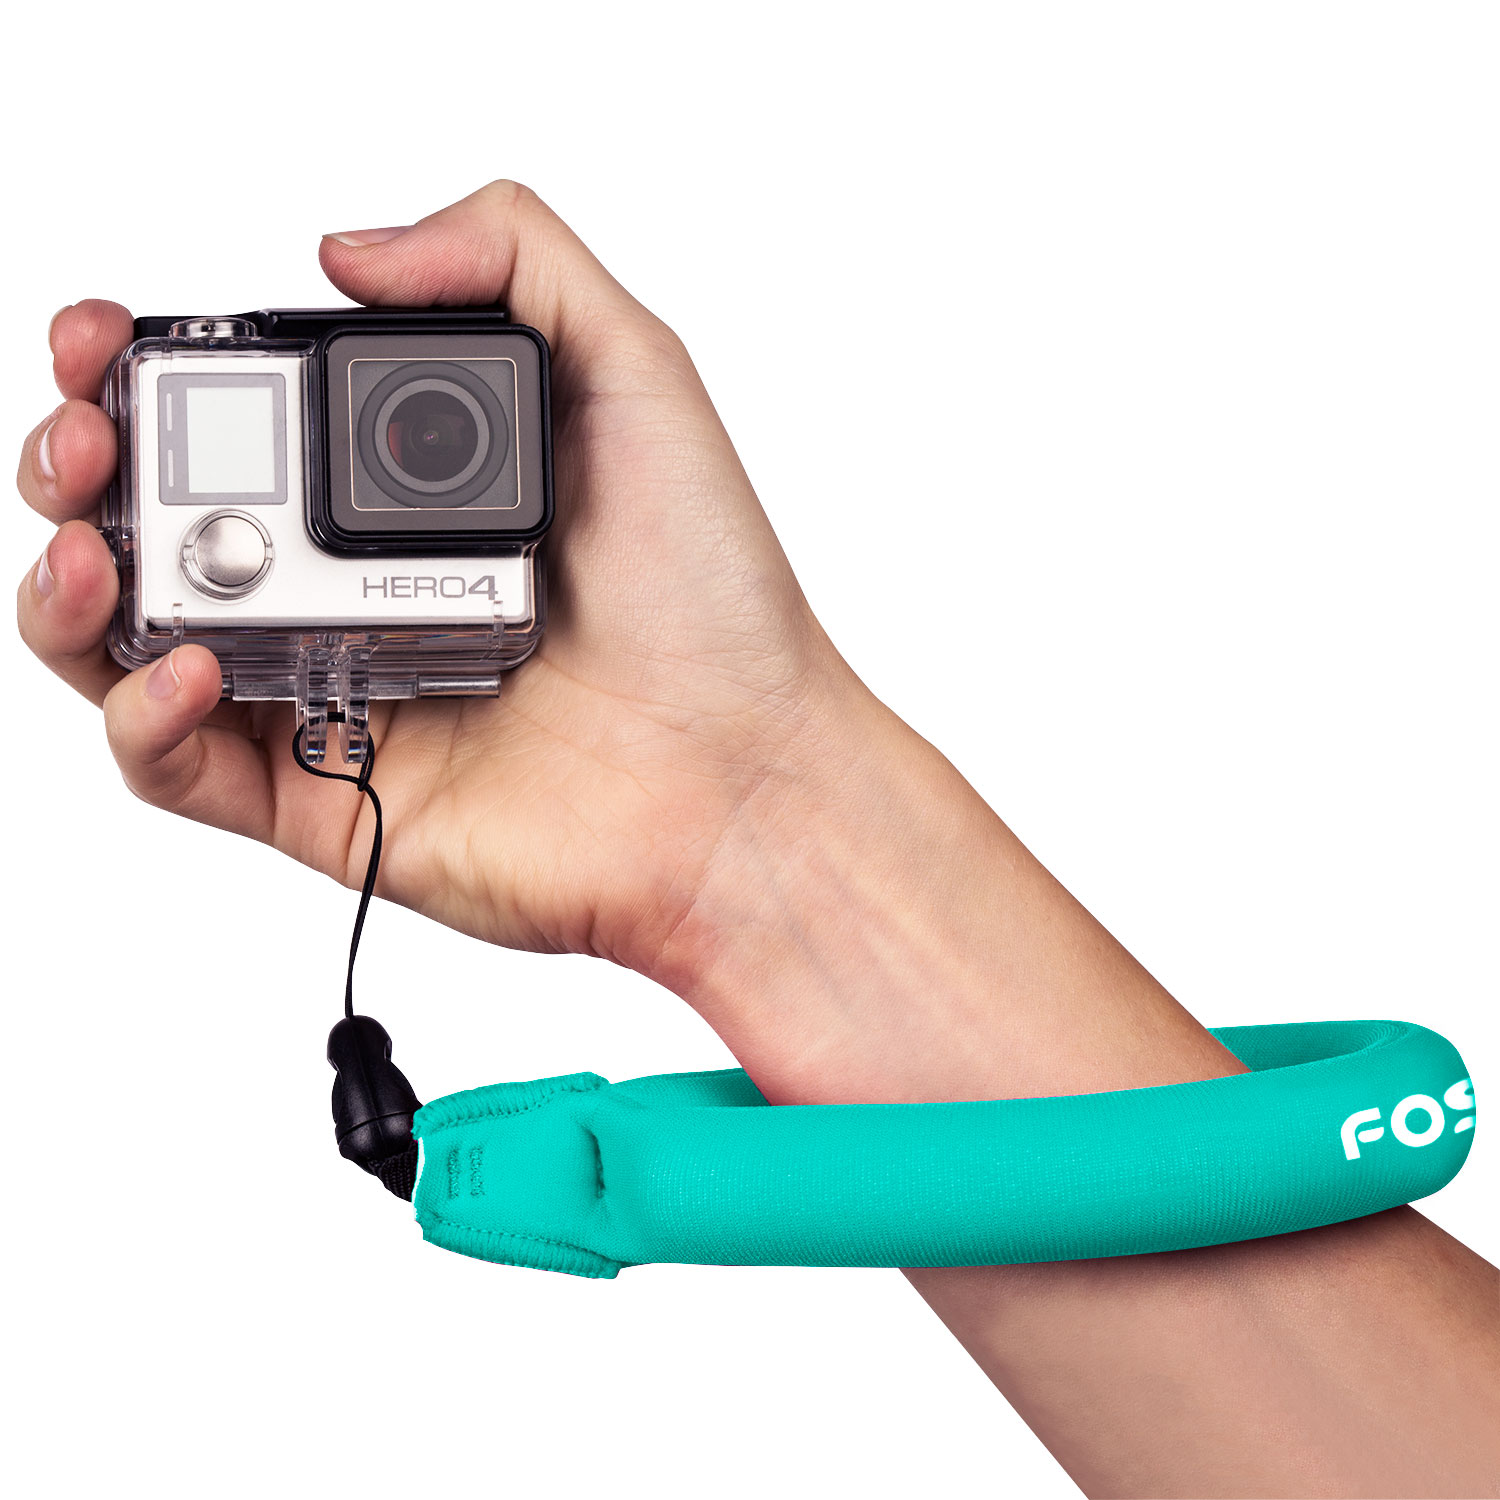 Fosmon Floating Camera Strap Universal Floating Wrist Strap for GoPro, Waterproof Camera, Phone, Keys and More (Blue)